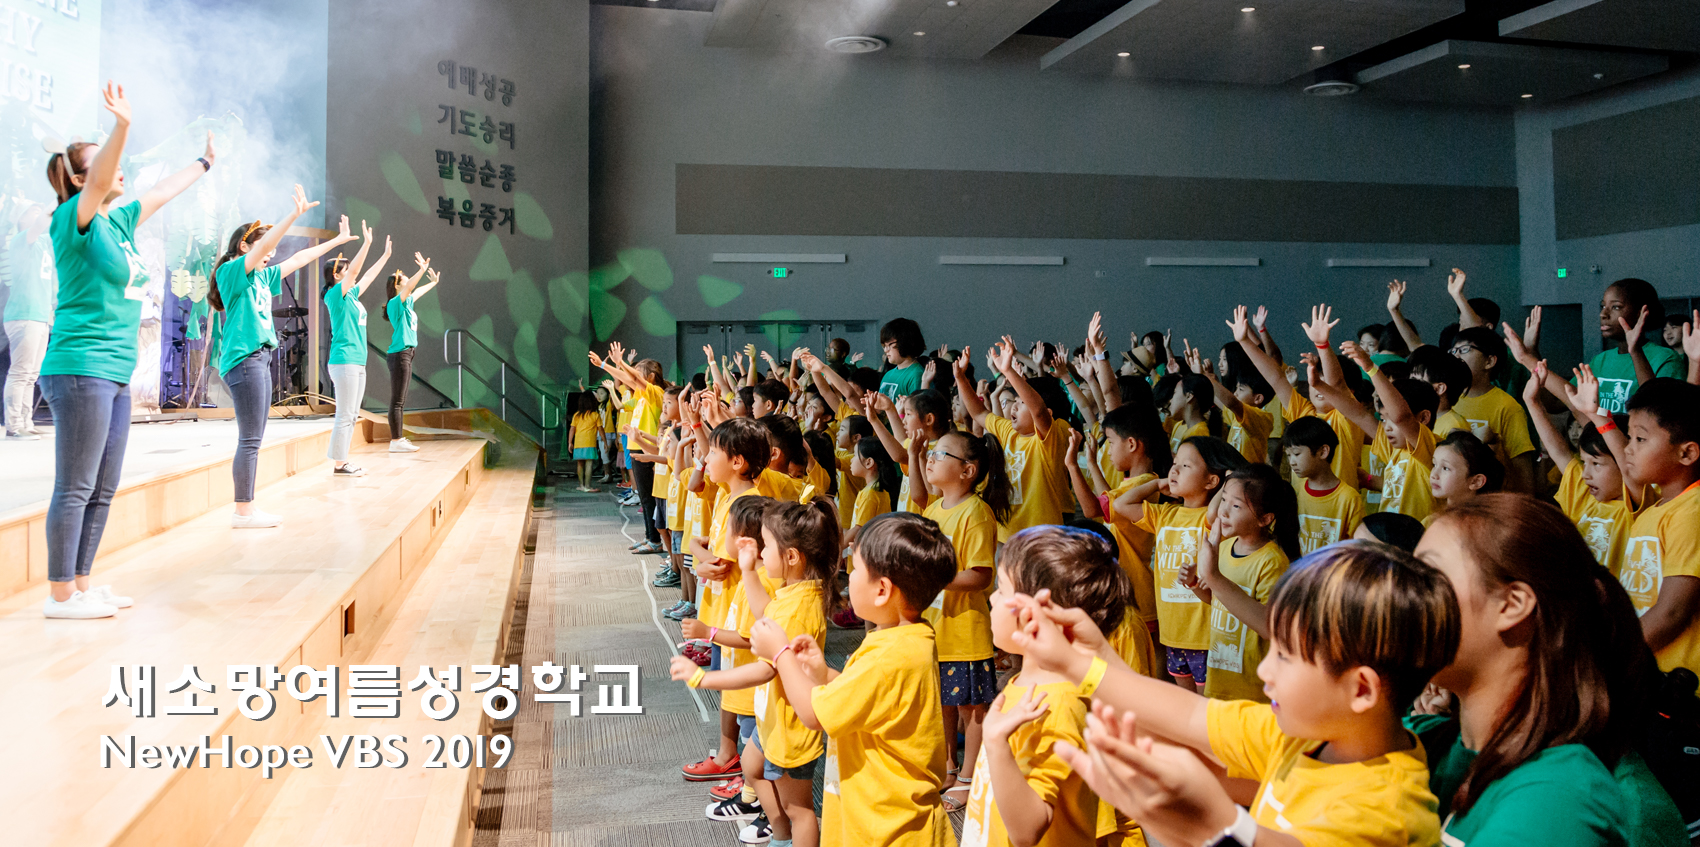 NewHope VBS 2019 5